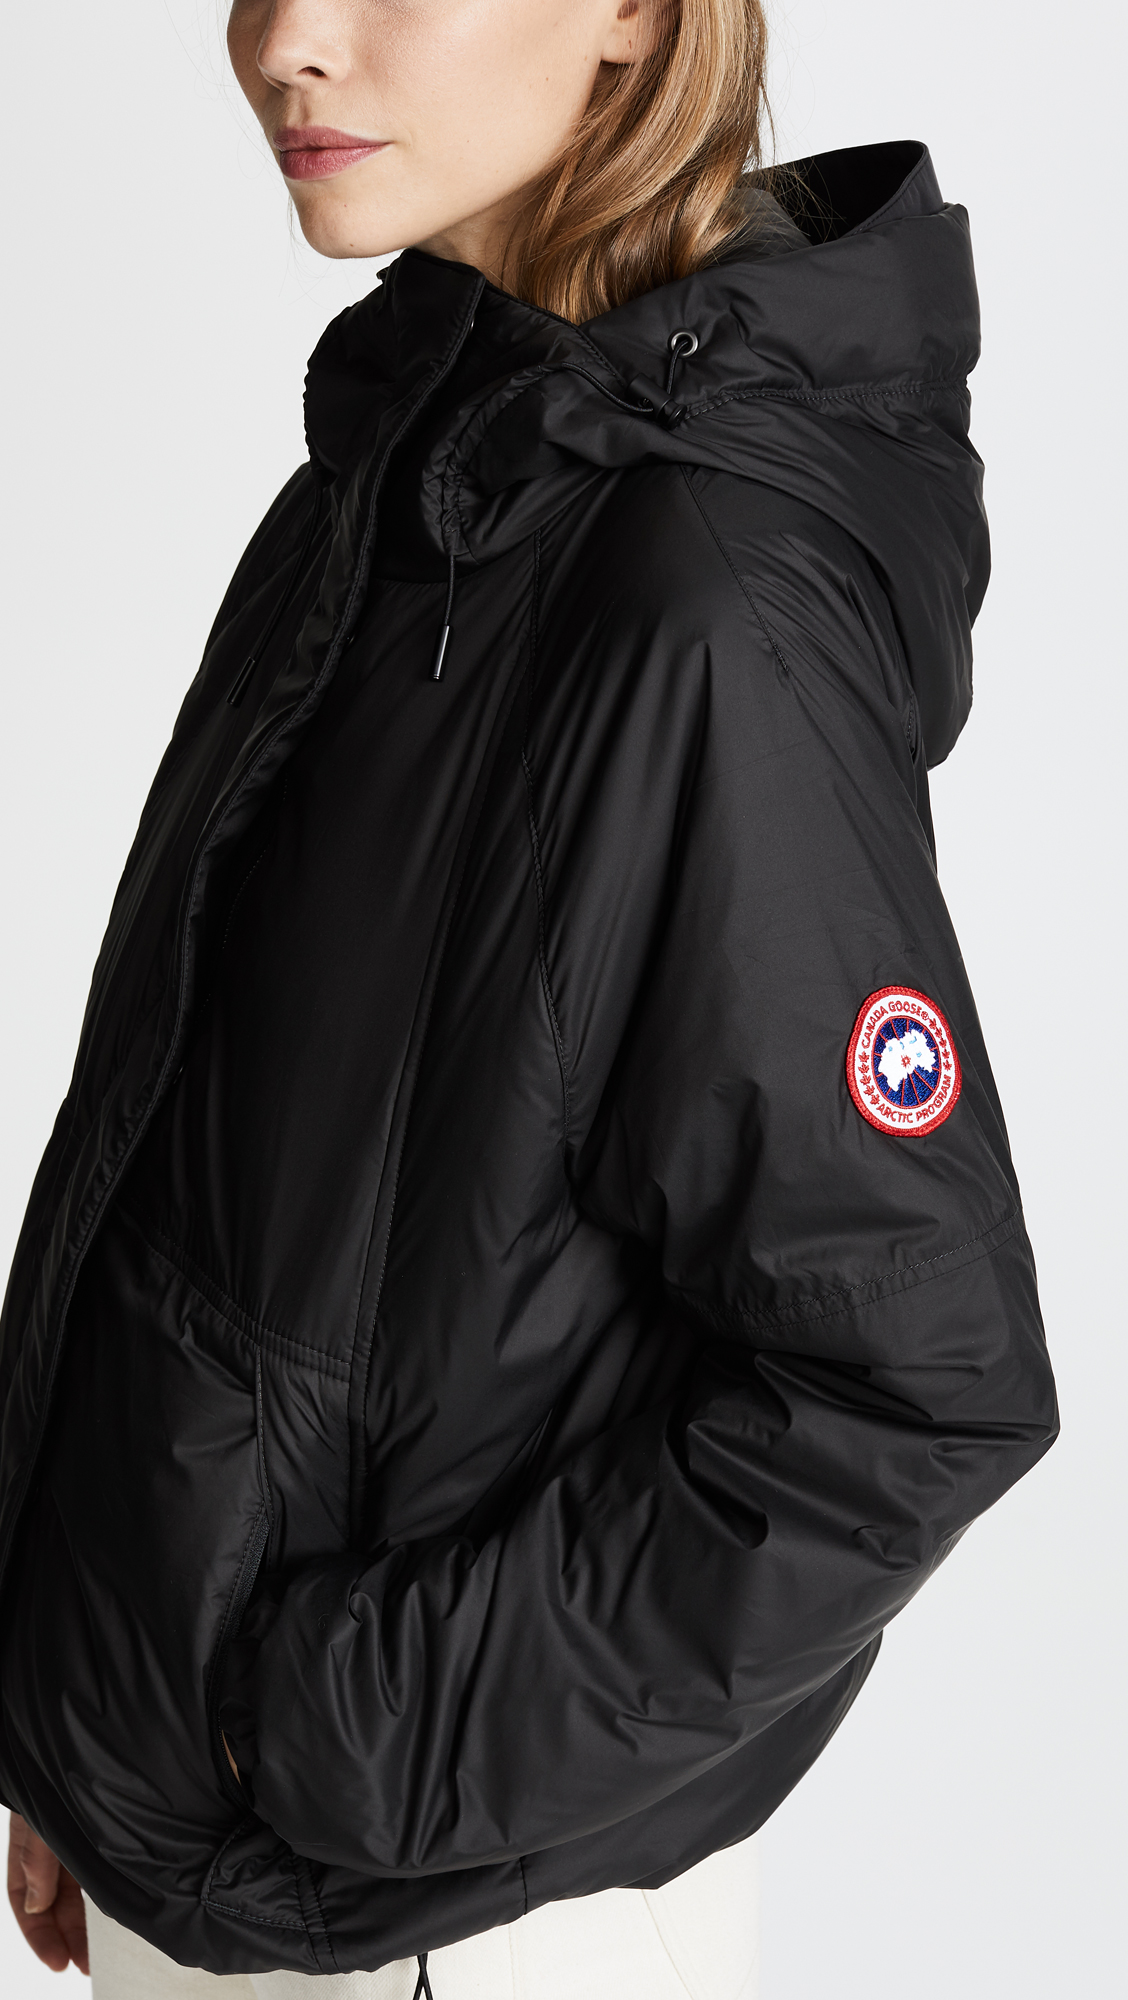 e8e9f4332c3a Canada Goose Campden Water Resistant Hooded Down Jacket